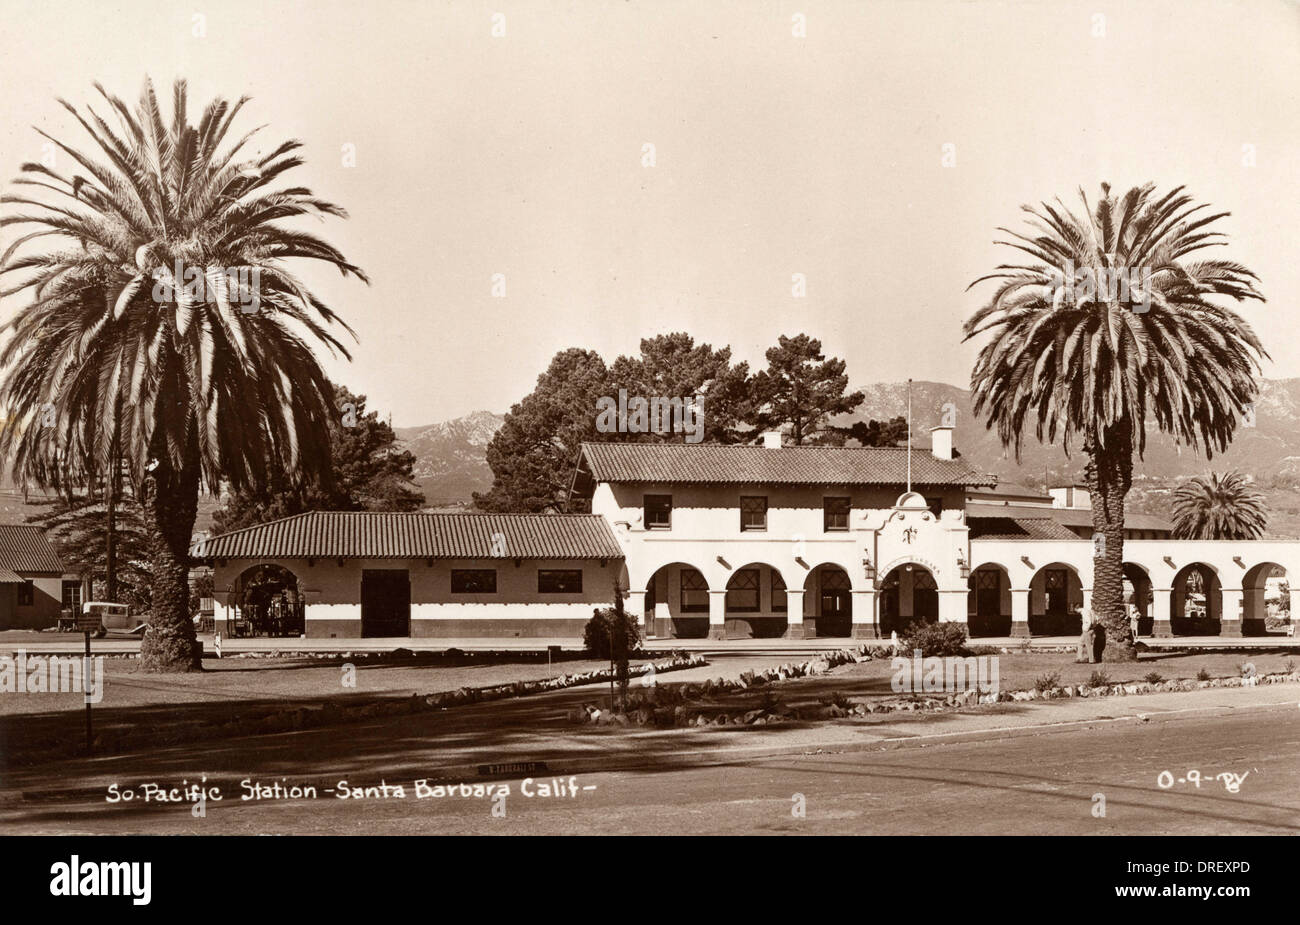 South Pacific railway station, Santa Barbara, California - Stock Image